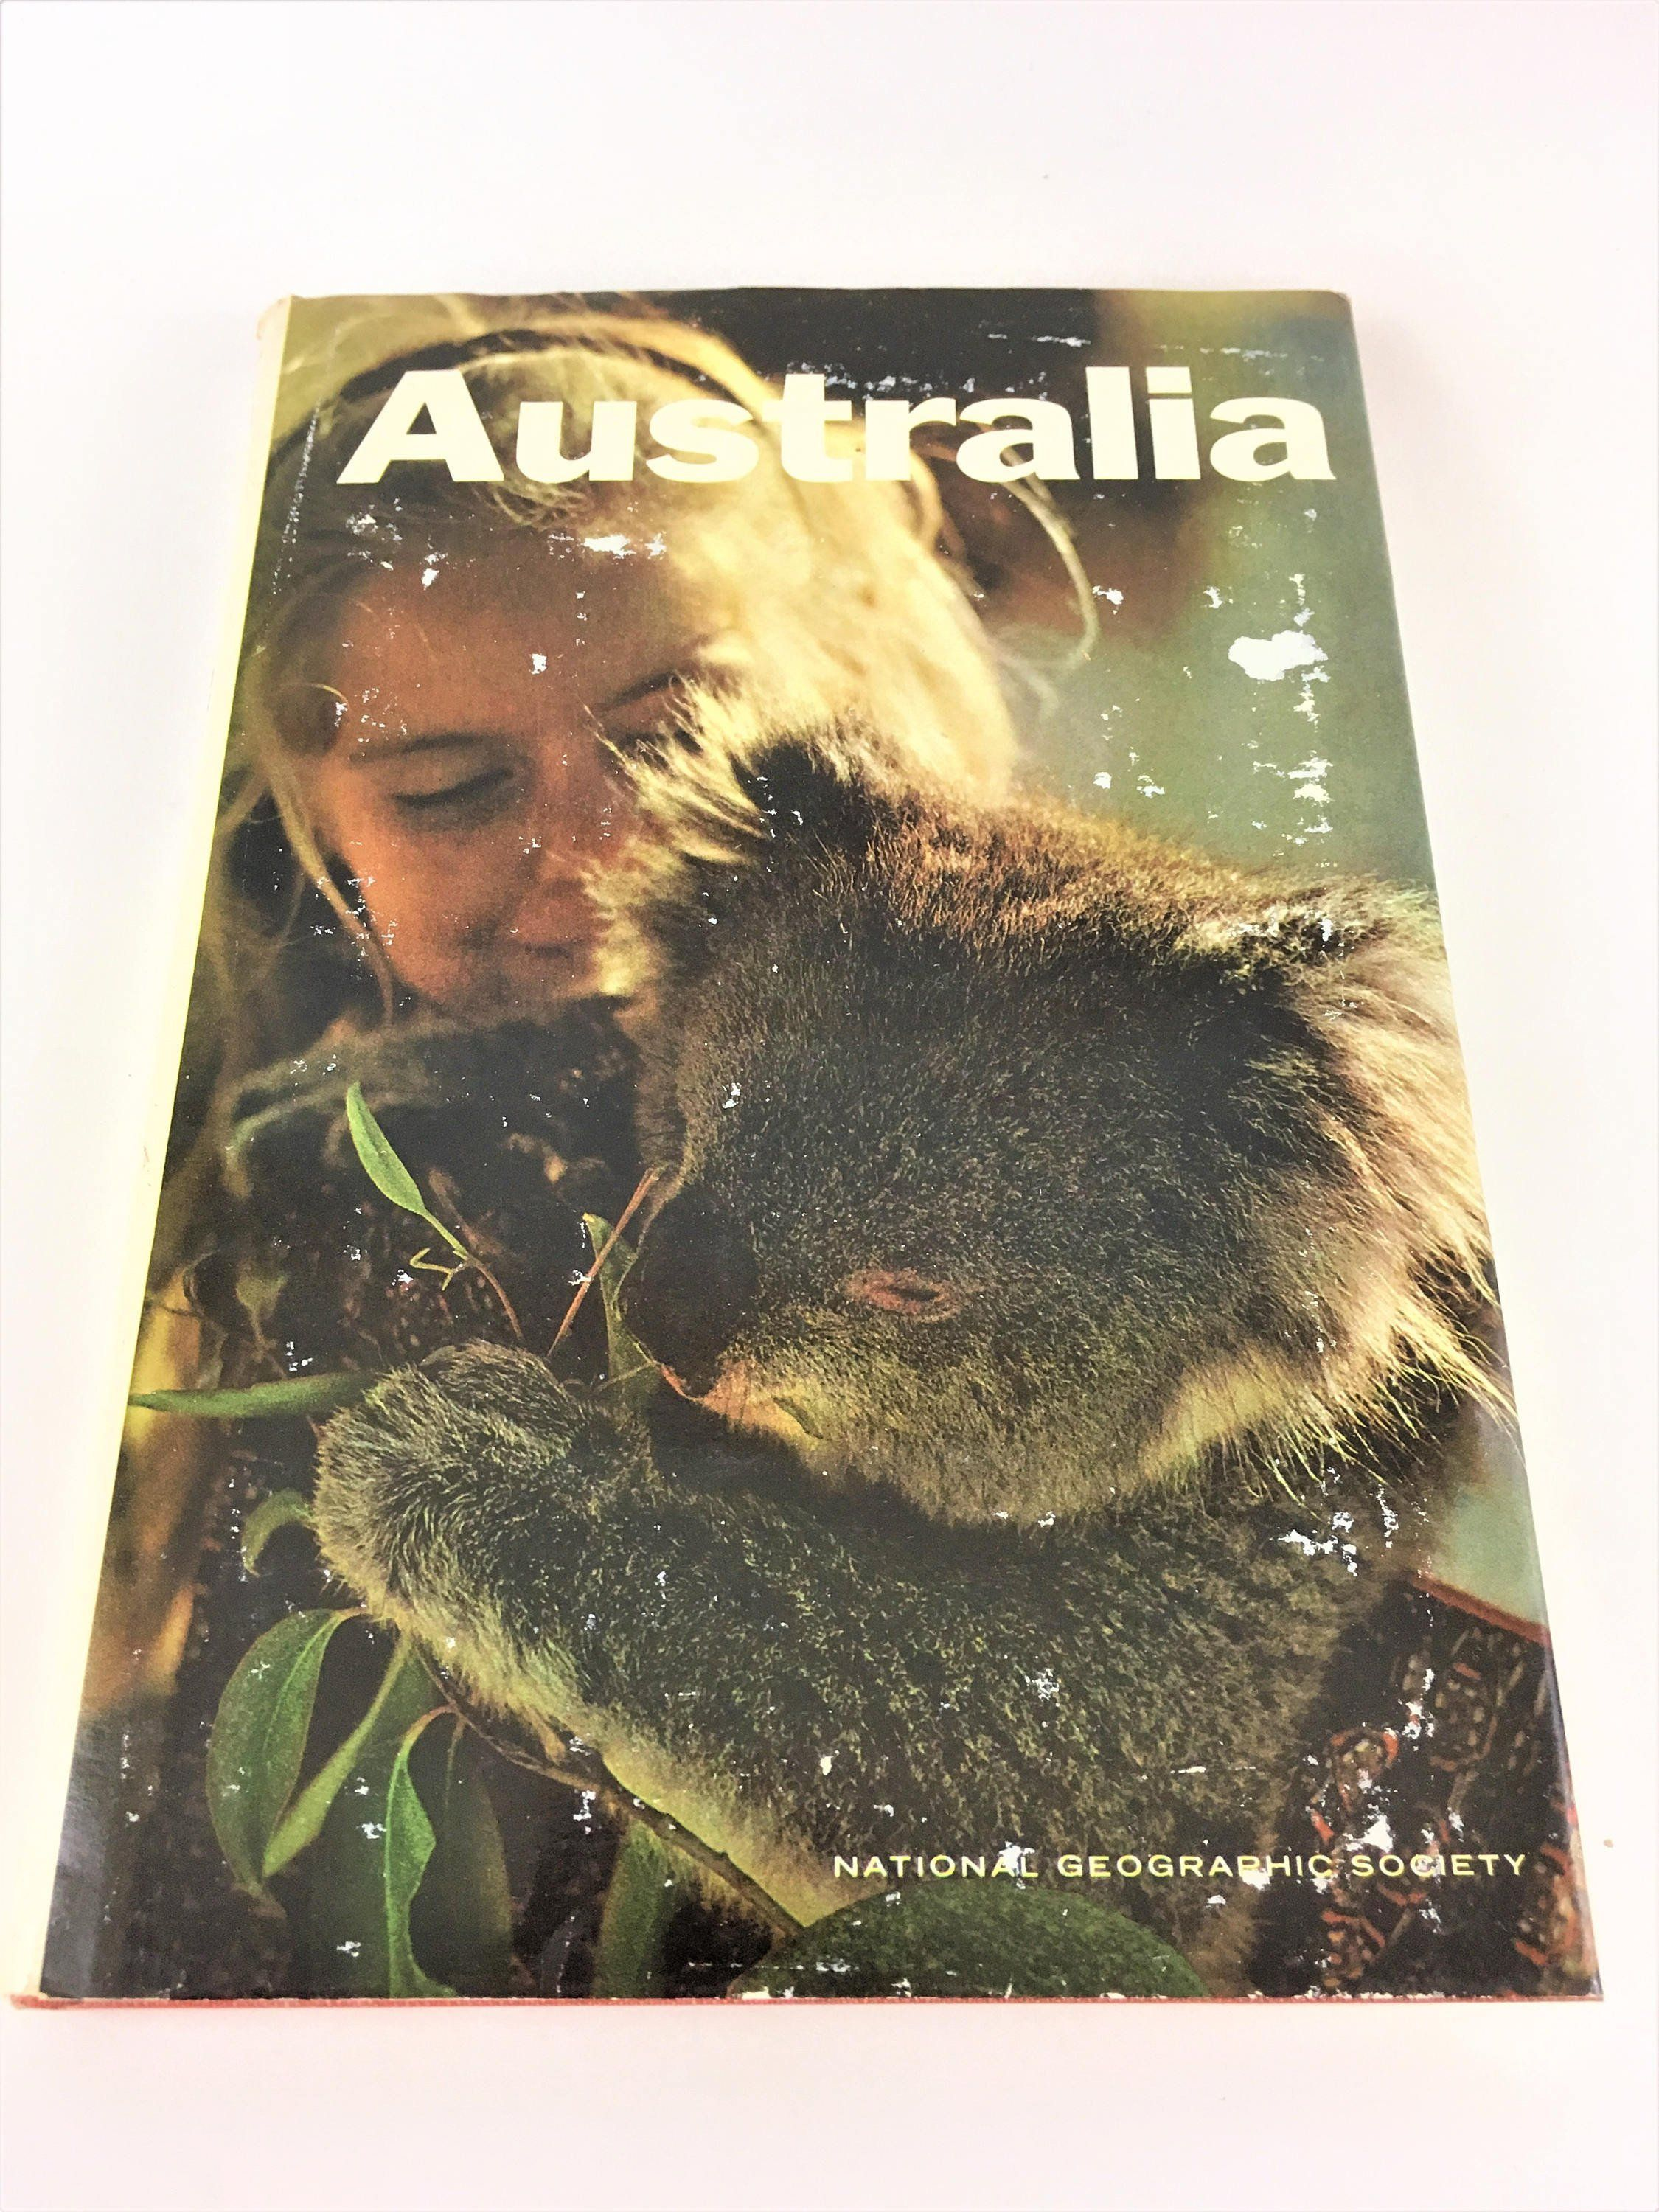 National Geographic Society Australia Coffee Table Book